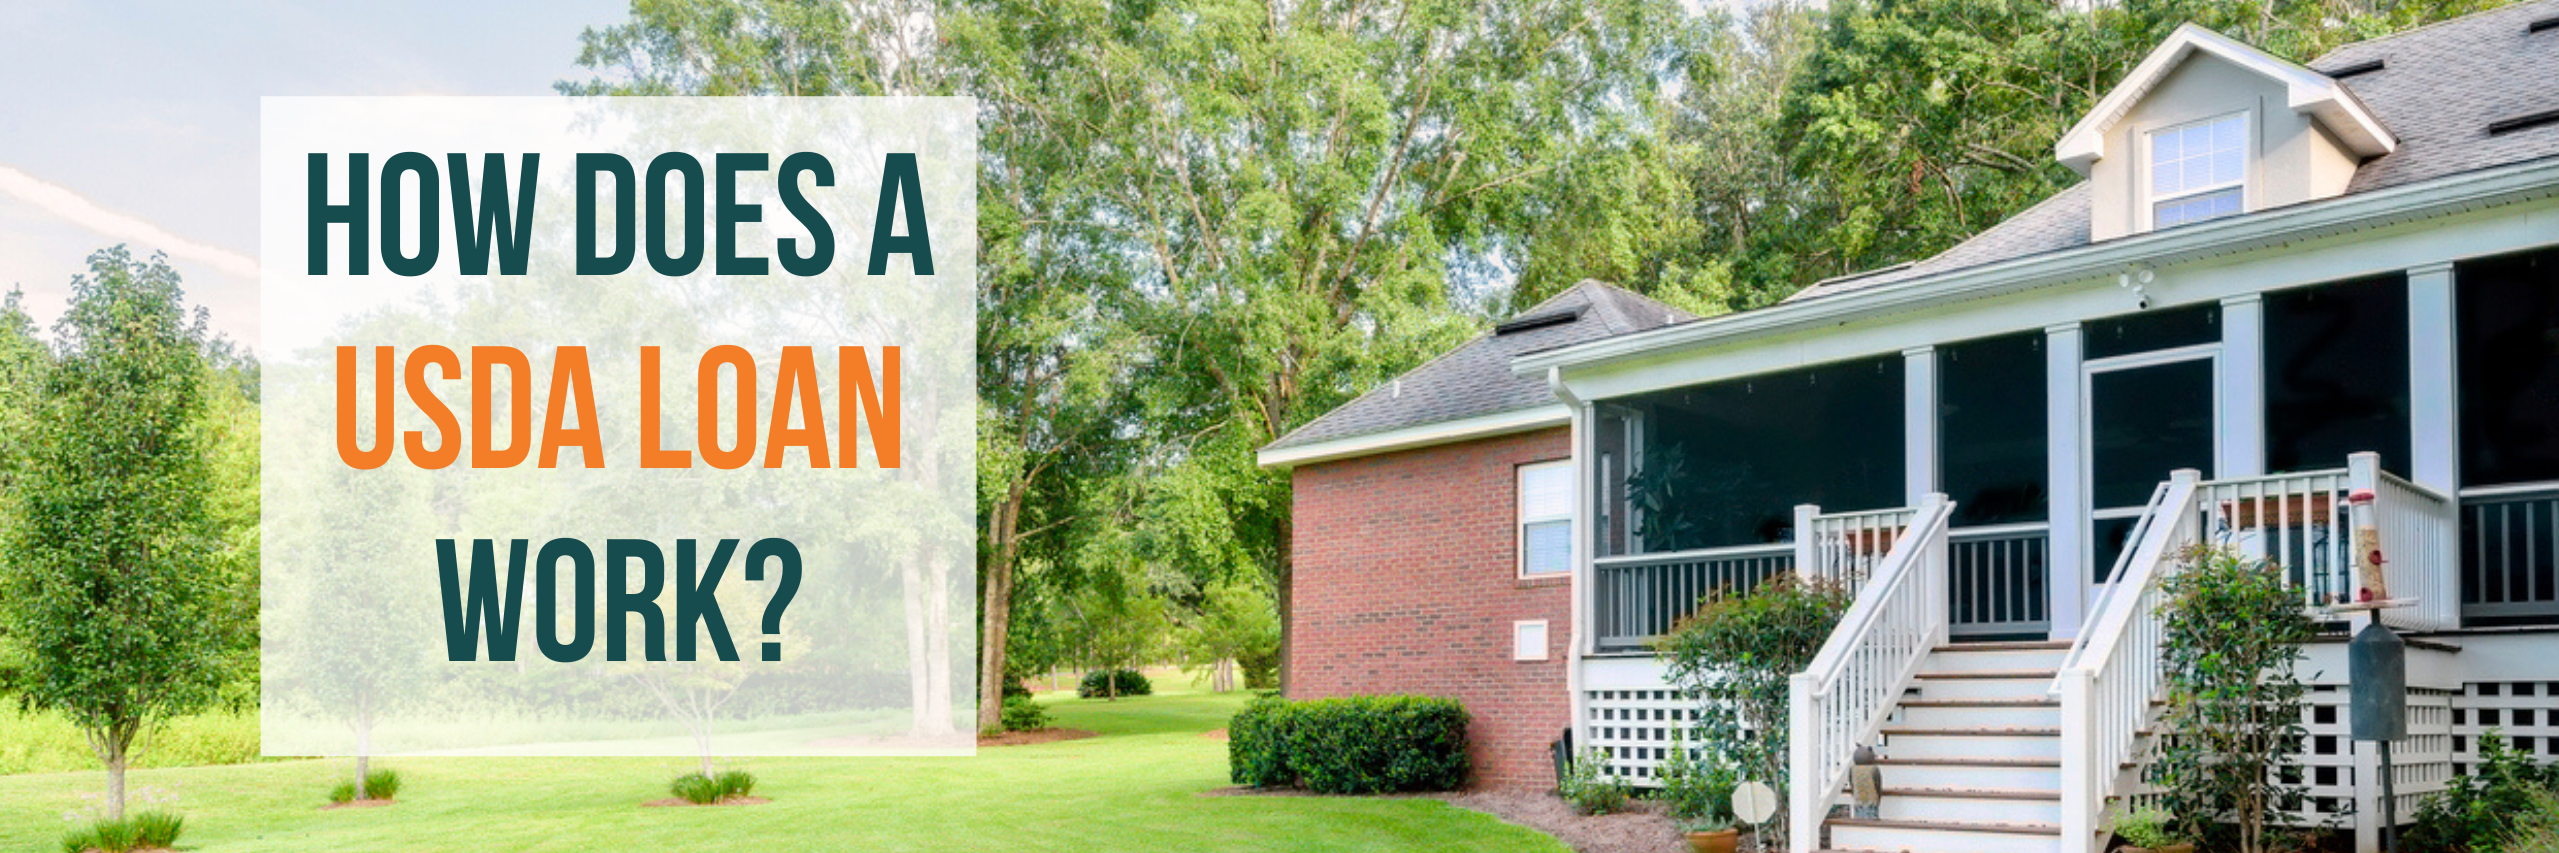 """A rural home with the text """"How Does a USDA Loan Work"""" superimposed over it."""